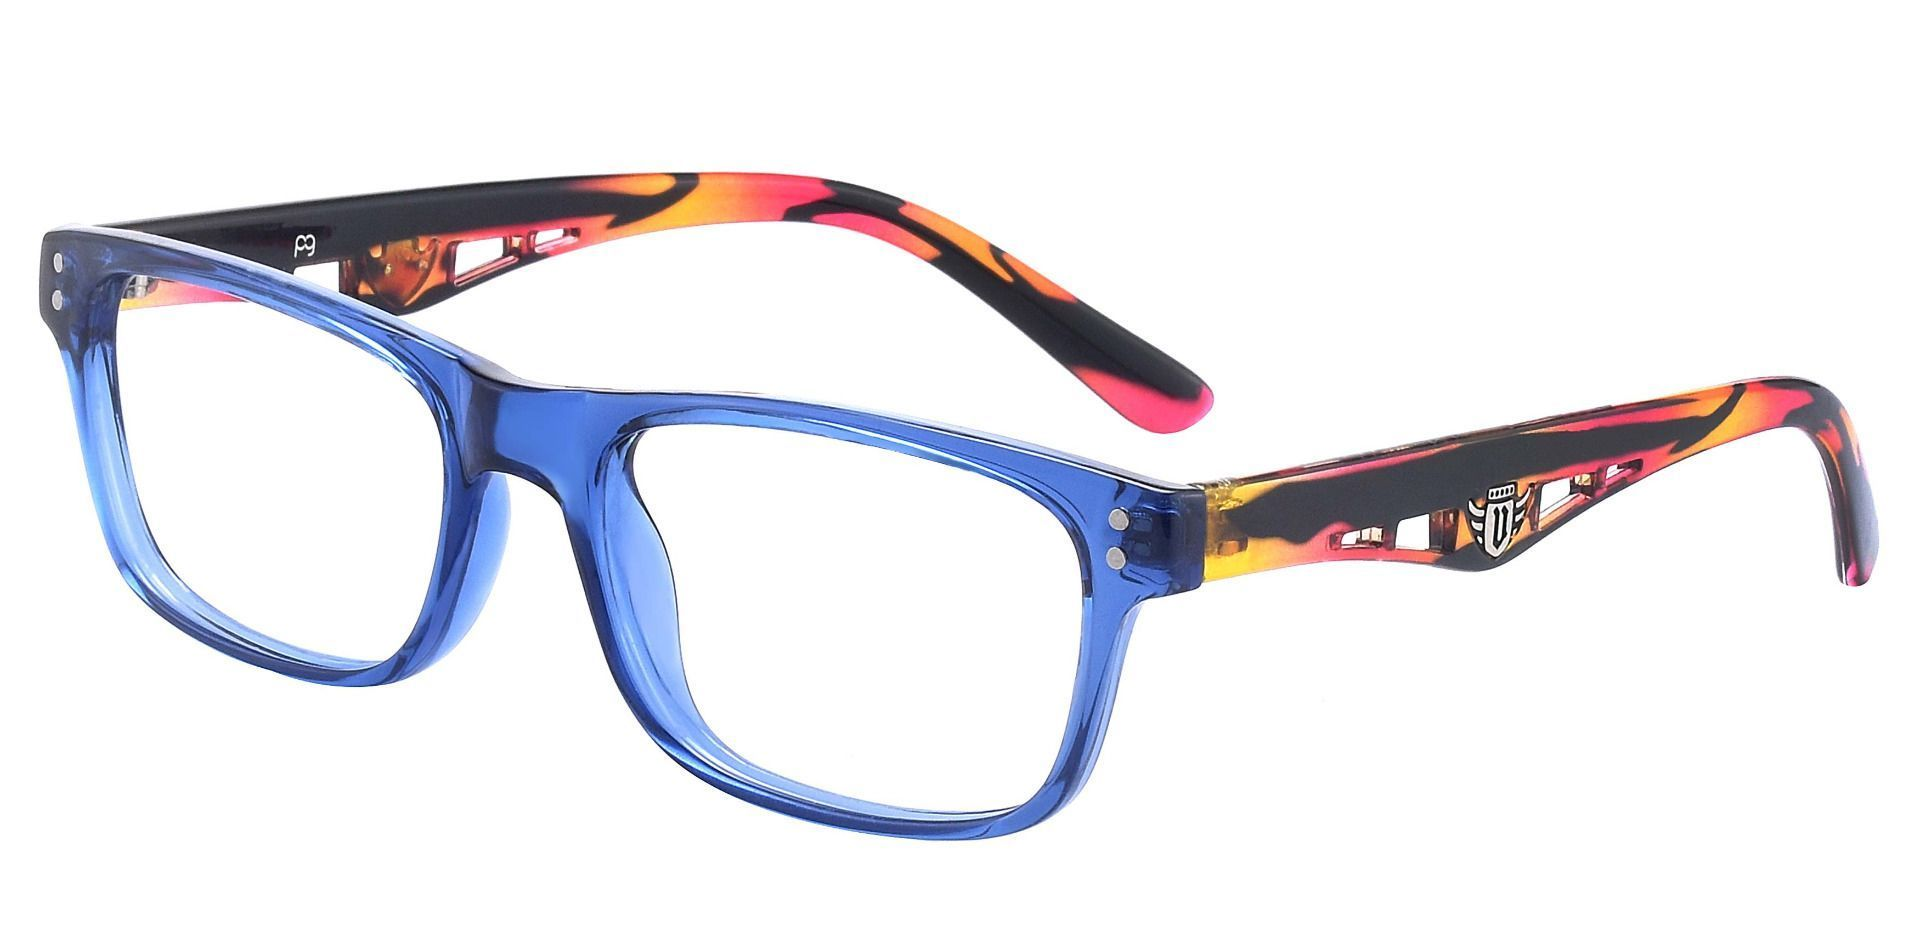 Aura Rectangle Prescription Glasses - The Frame Id Blue And Floral